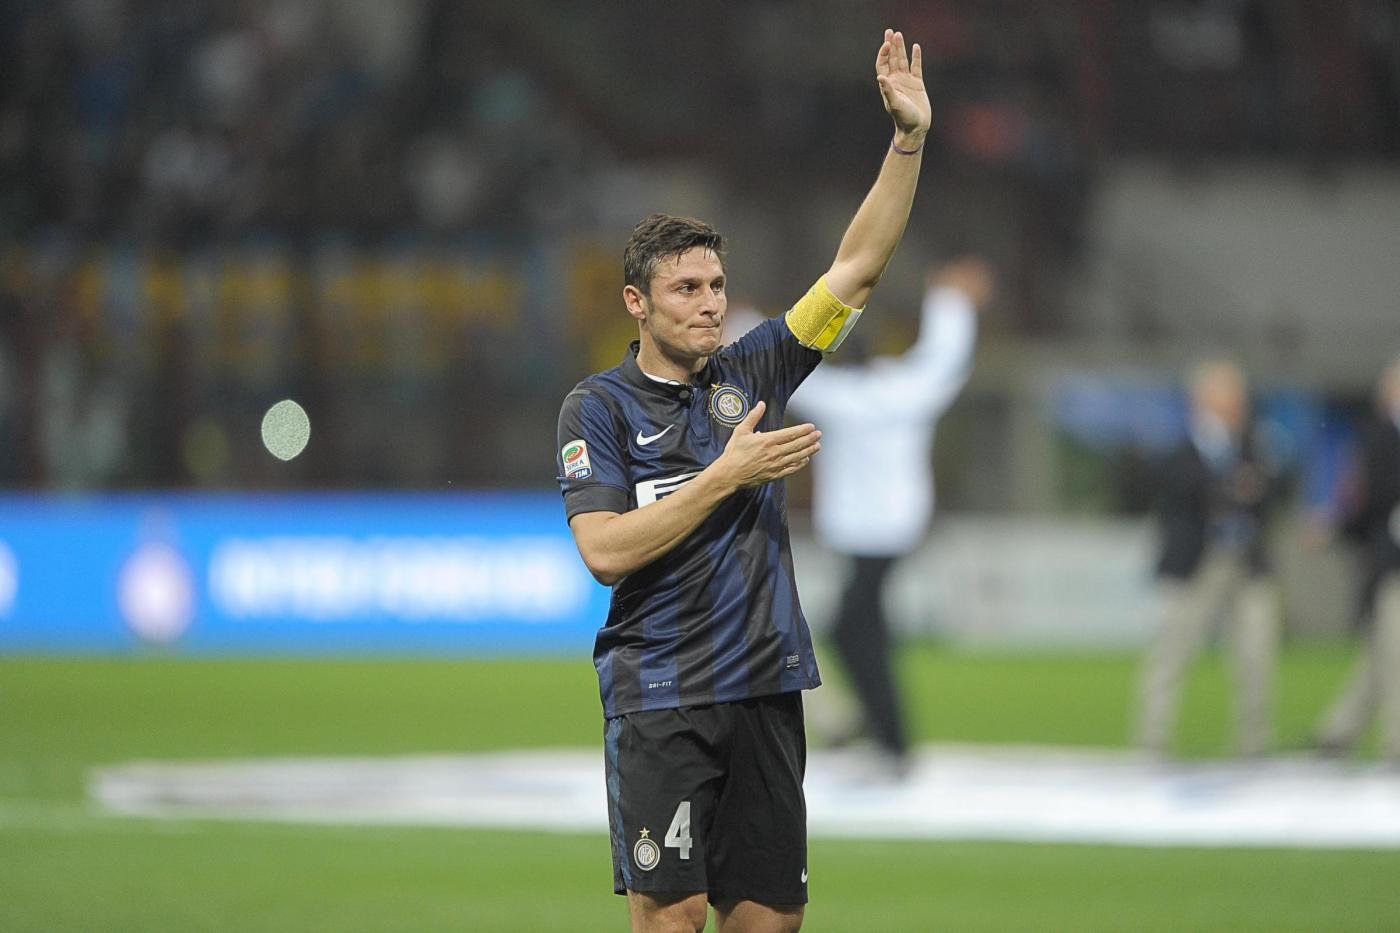 Inter vs Lazio 4-1: Europa League più vicina, lo stadio saluta Zanetti